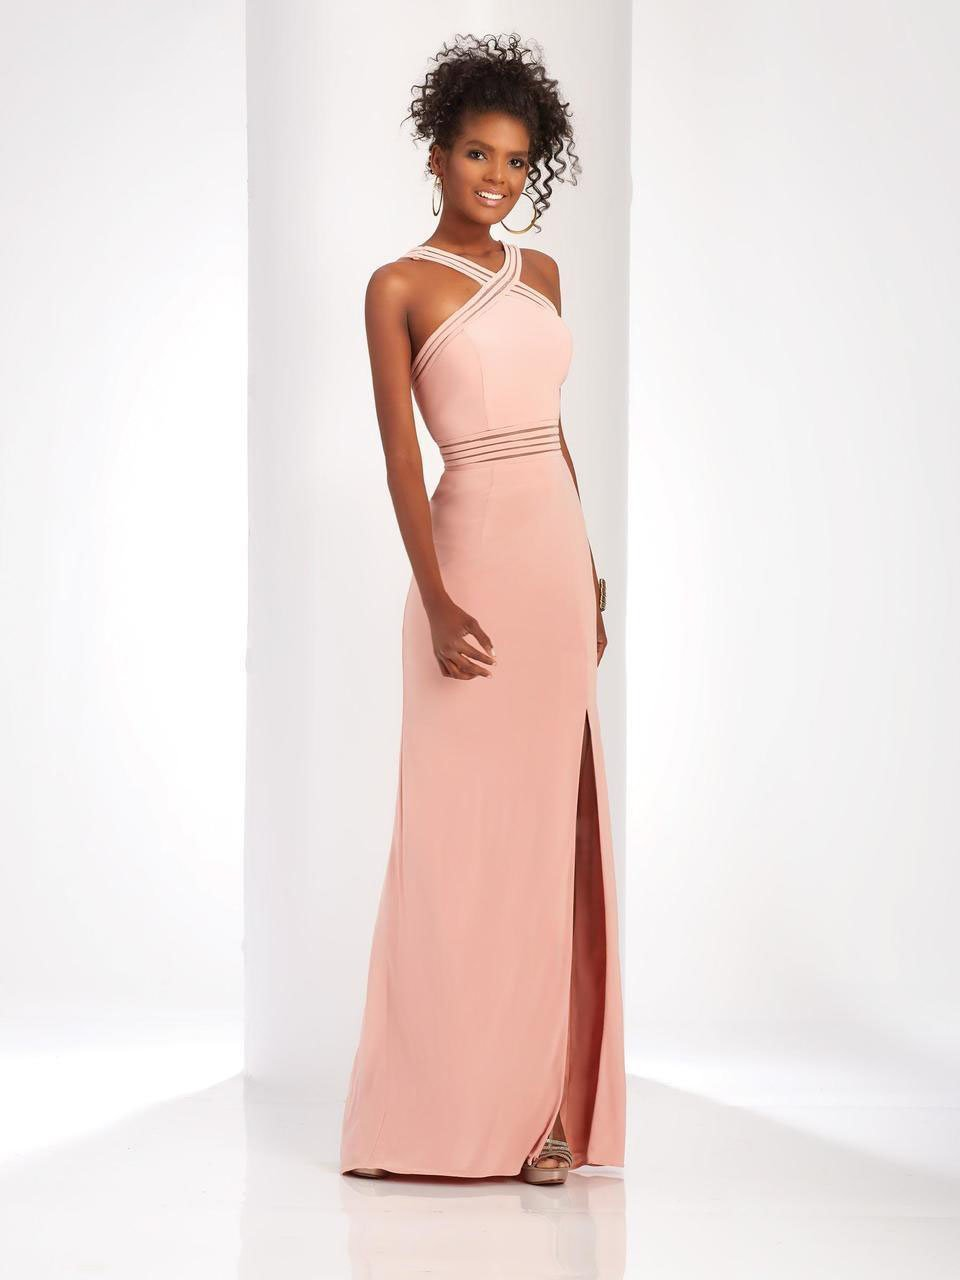 Clarisse - 3483 Sheer Striped Halter Strap Gown in Pink